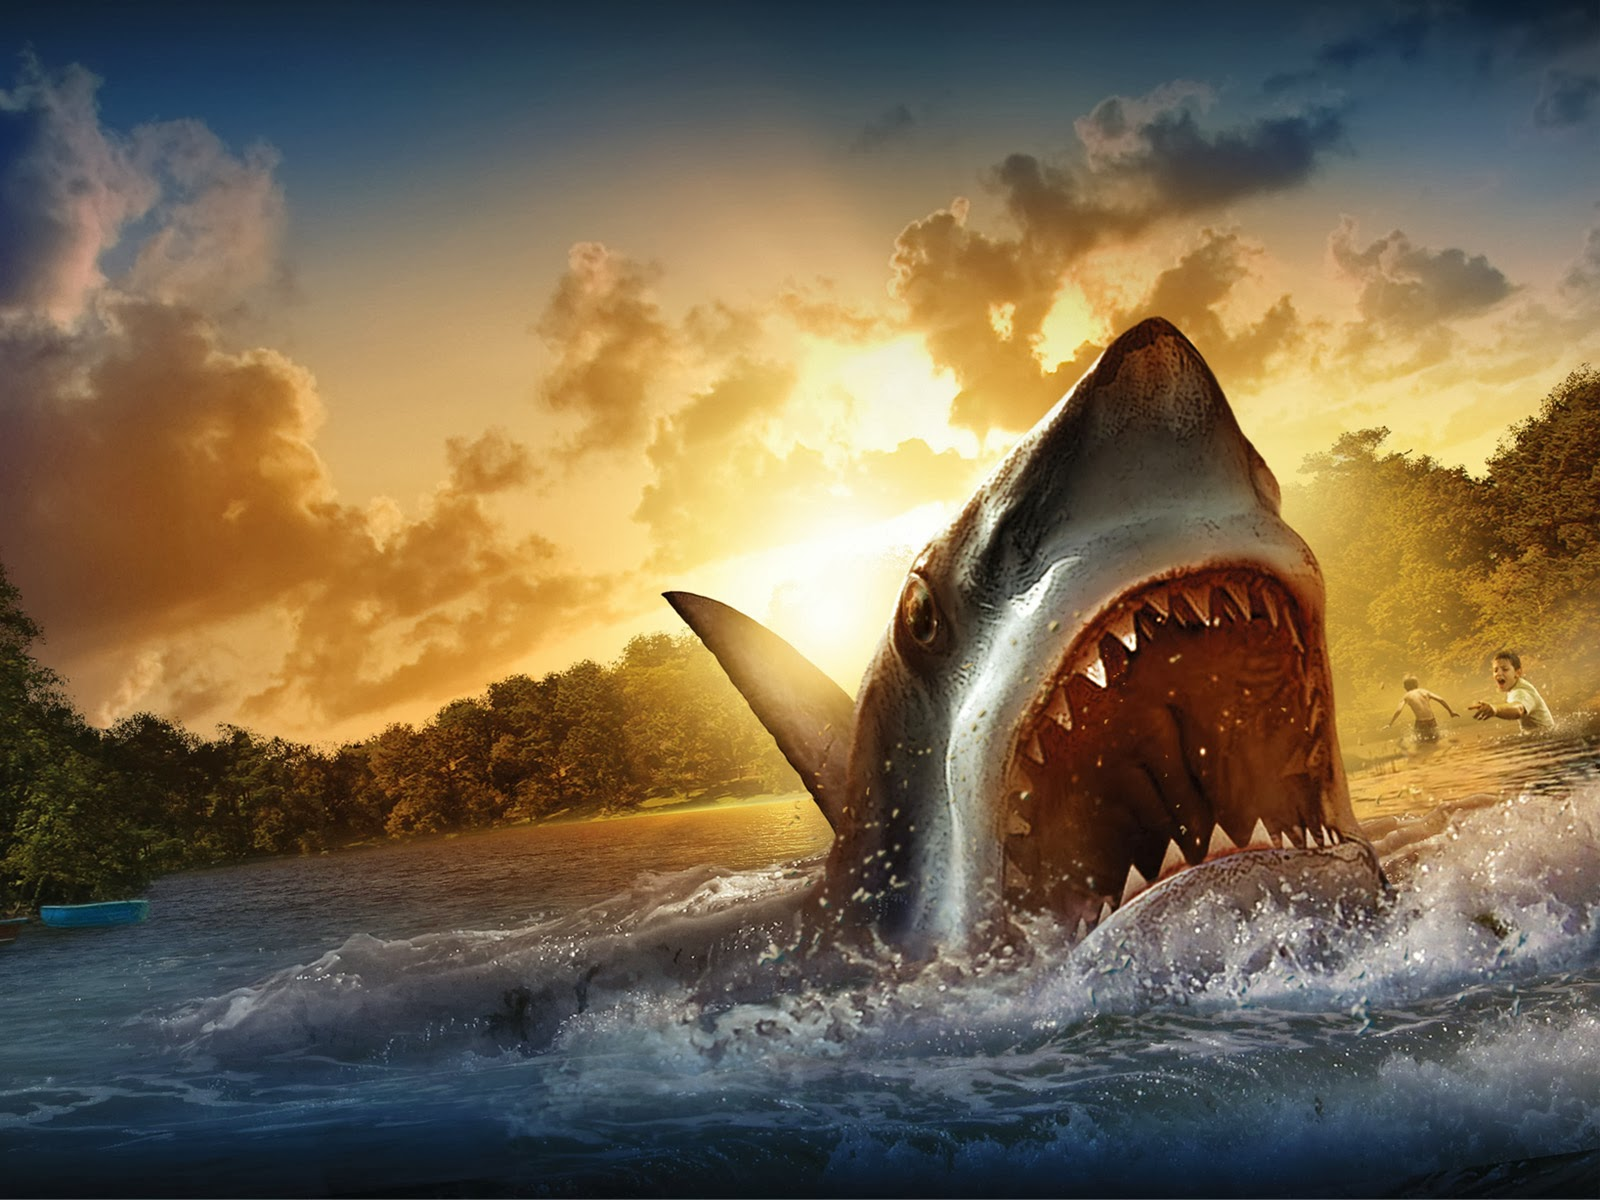 download wallpaper shark 1600 - photo #9